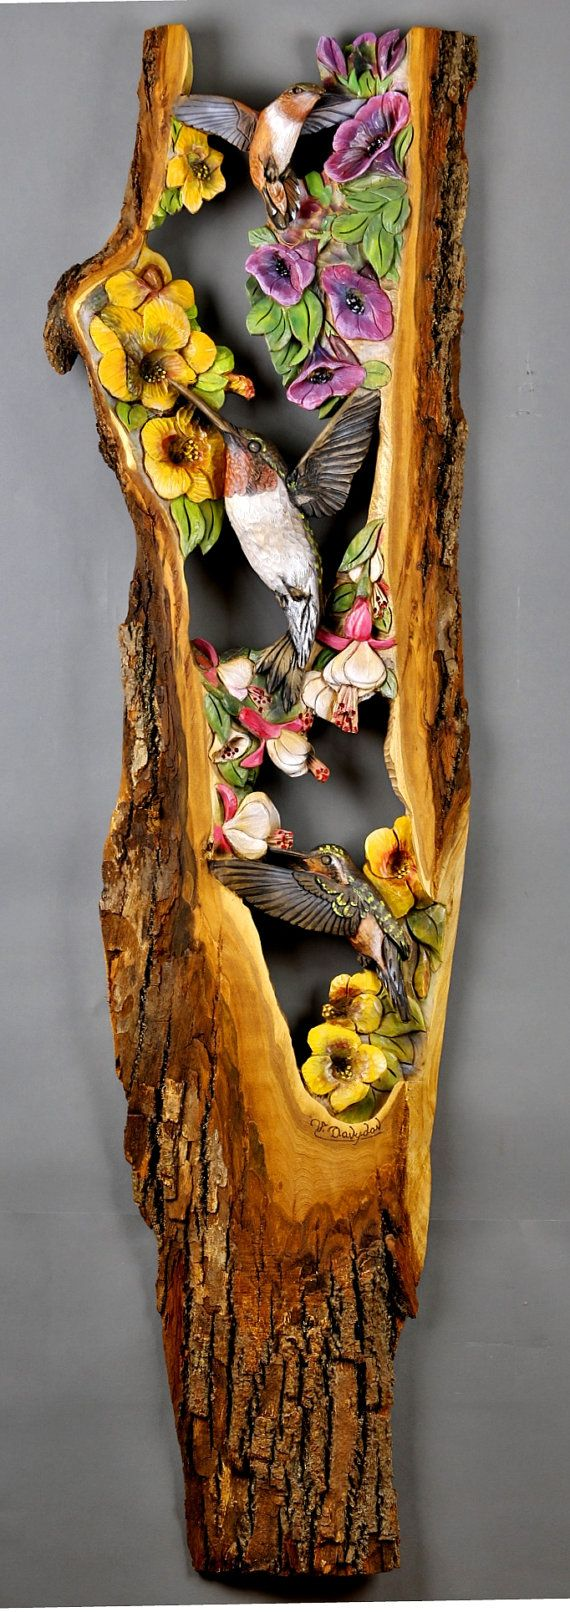 Hummingbirds on Flower Carved Wood Handmade Gift Wall Art by Davydovart Decoration Unique For Home and Cabin Wood with Bark OOAK carving – gzd-fatoş-knk